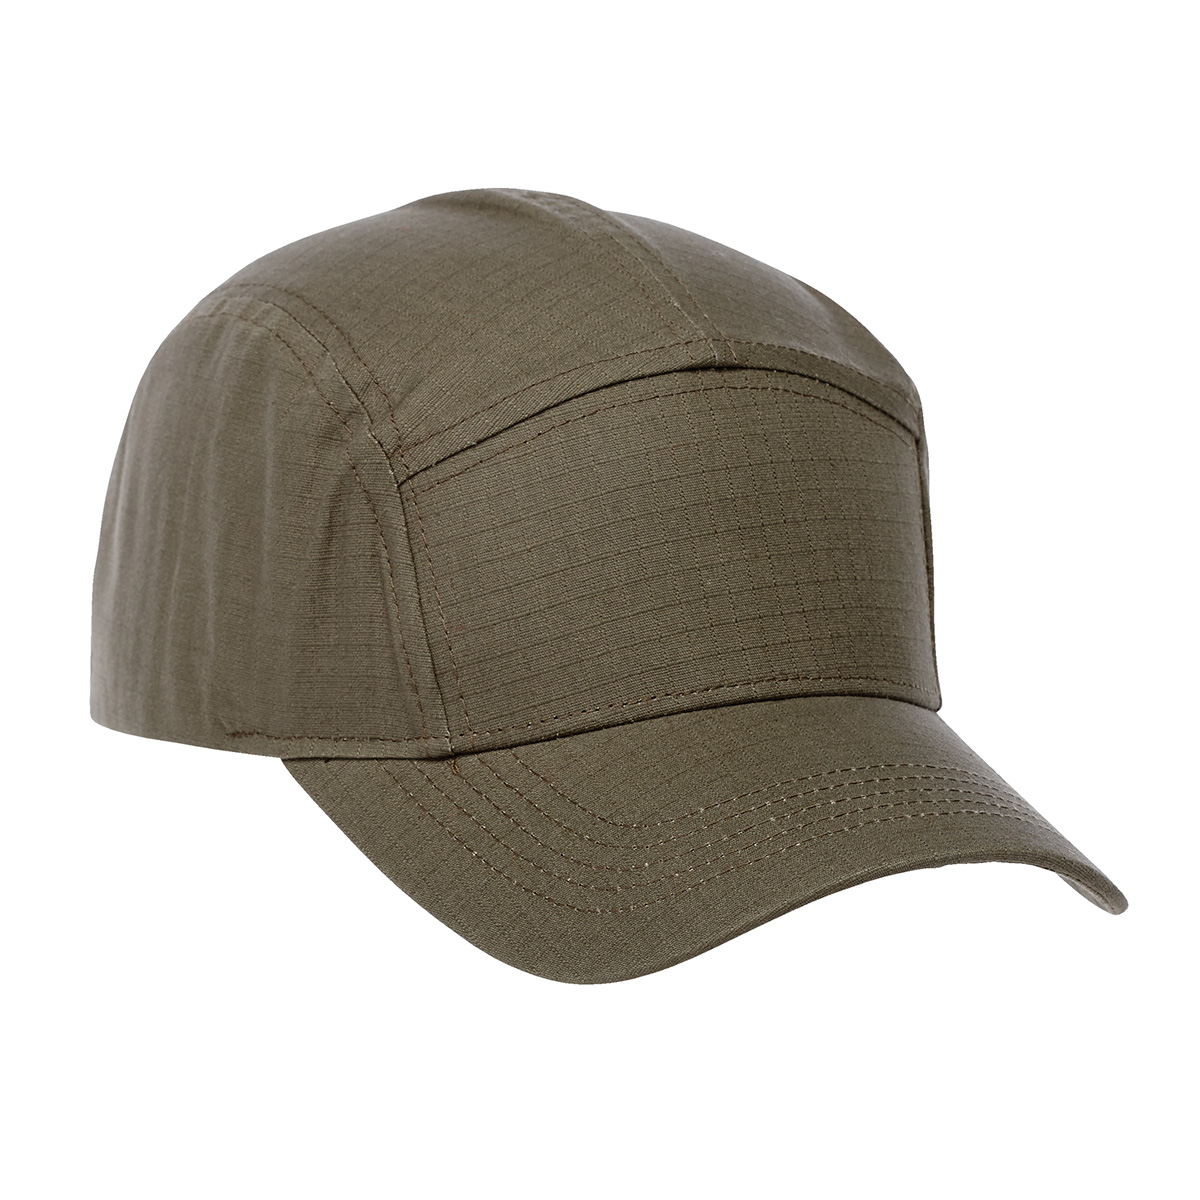 Manitou Ballcap, #32032 - Embroidered